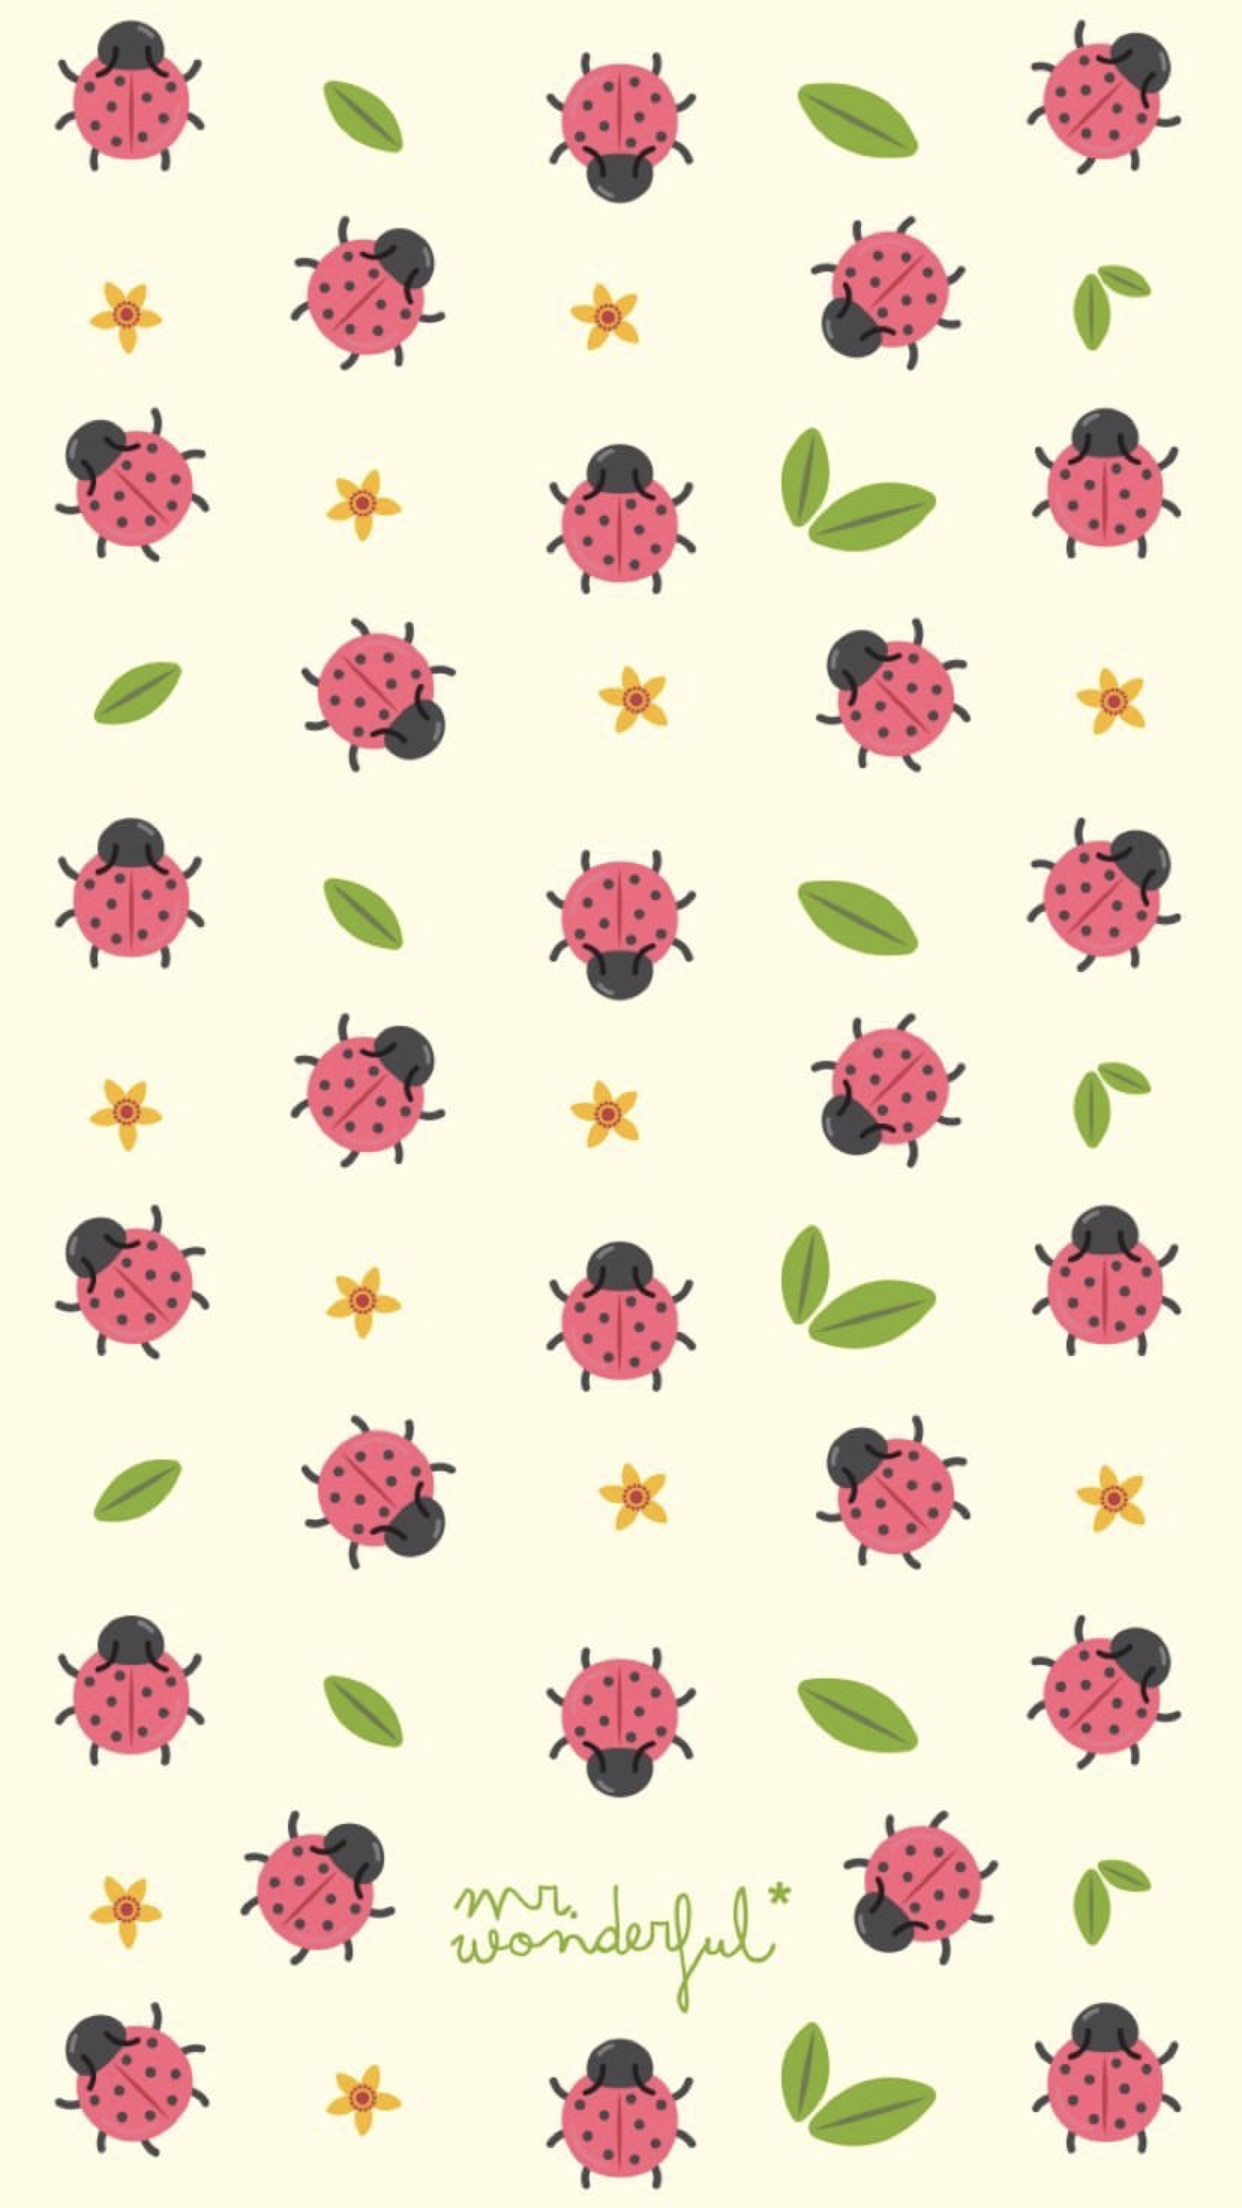 fondos de pantalla, fondo de pantalla, fondo de pantalla divertido, fondo de pantalla femenino, girly backgrounds, cool background, colorful backfround, fondo de pantalla patron, pattern, fondo de pantalla de catarinas.